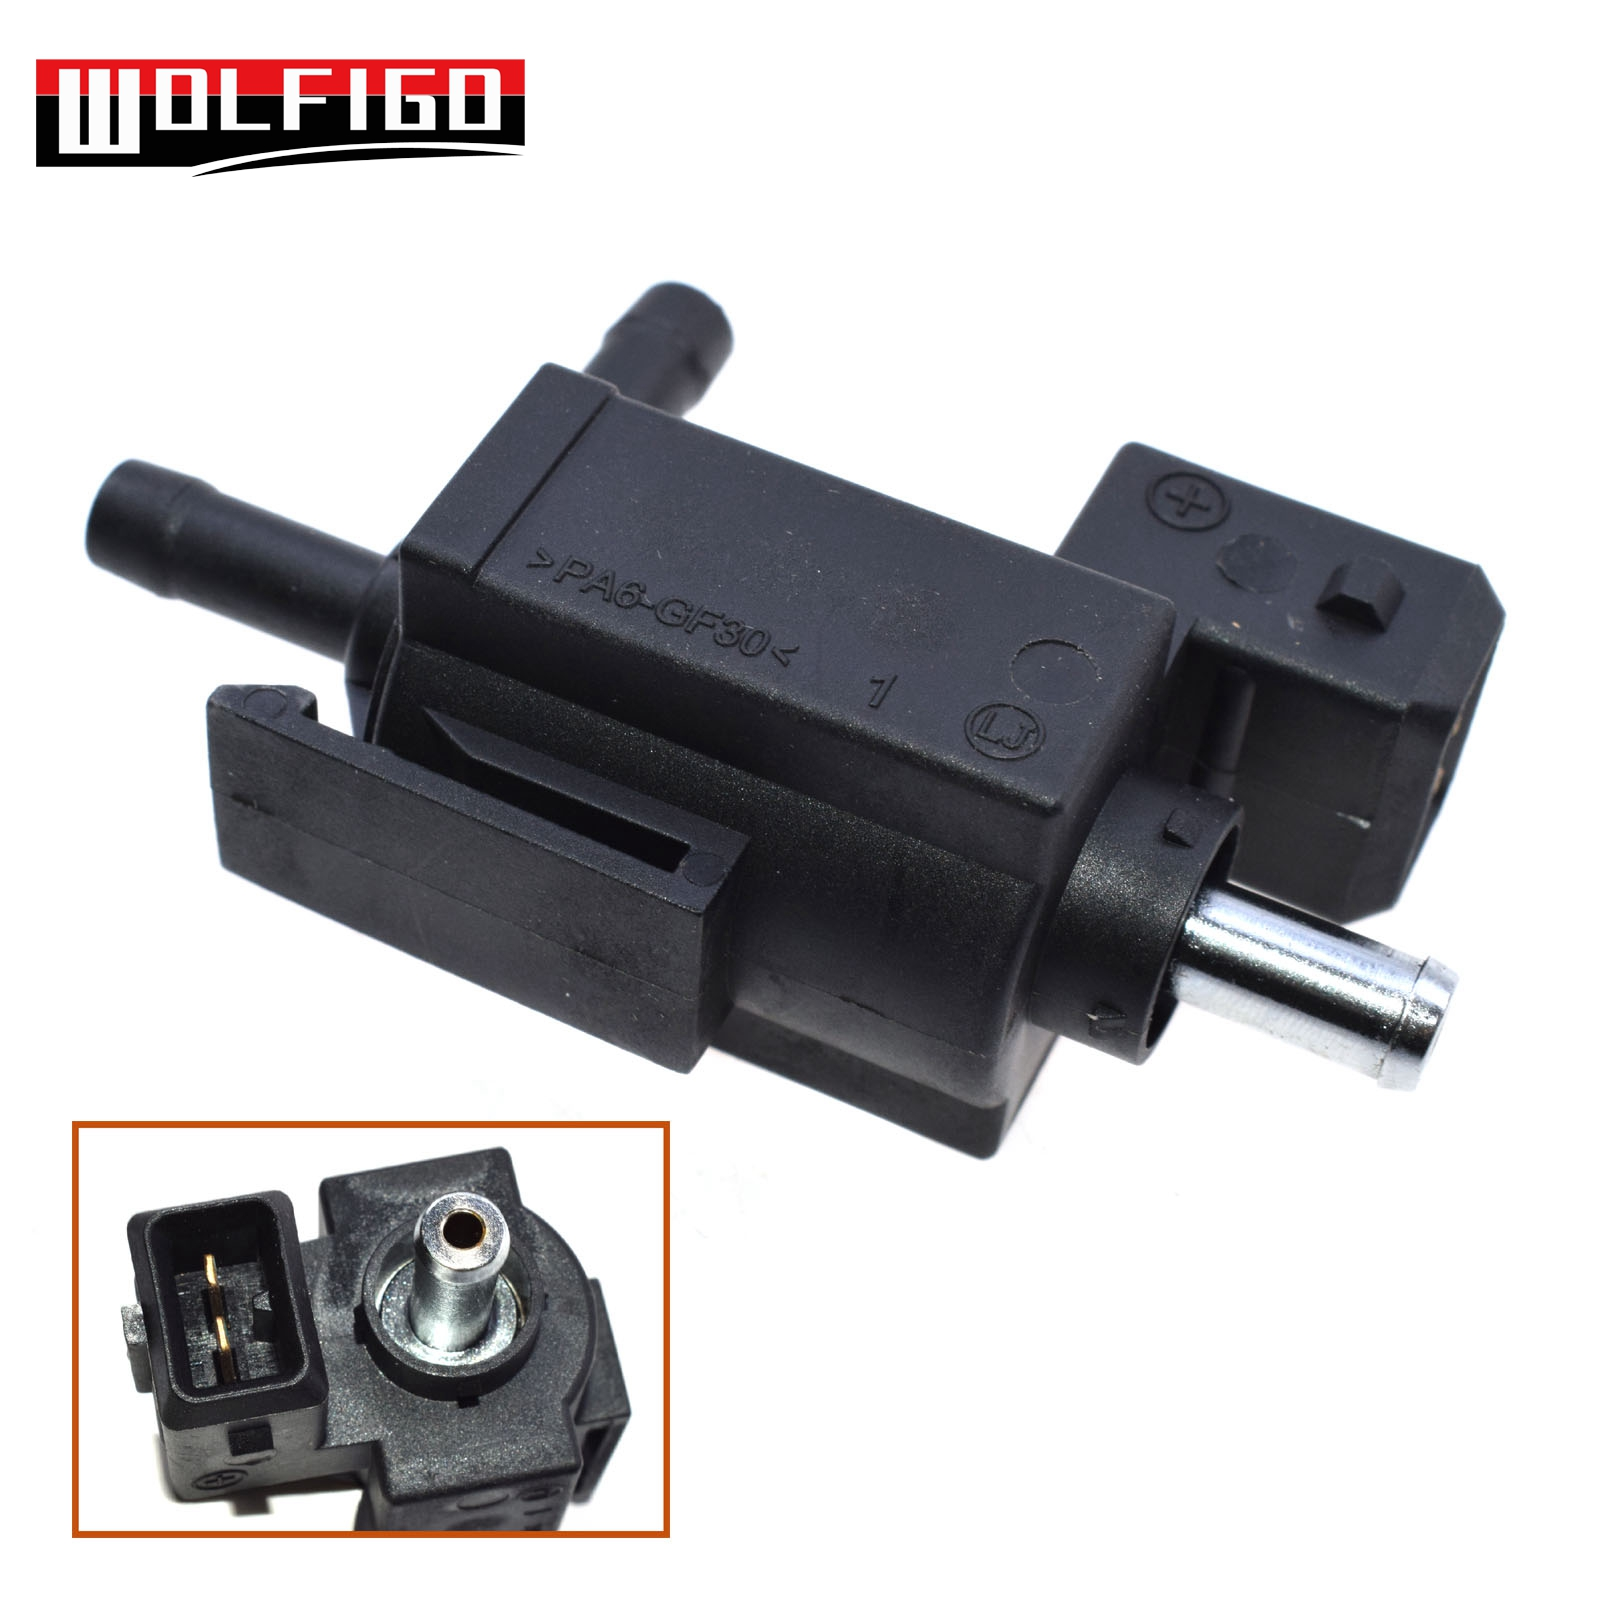 WOLFIGO New For Saab 9-3 9-5 For OPEL VECTRA C For VAUXHALL VECTRA Mk II (C) Turbocharger Boost Control Valve Pierburg 728311040